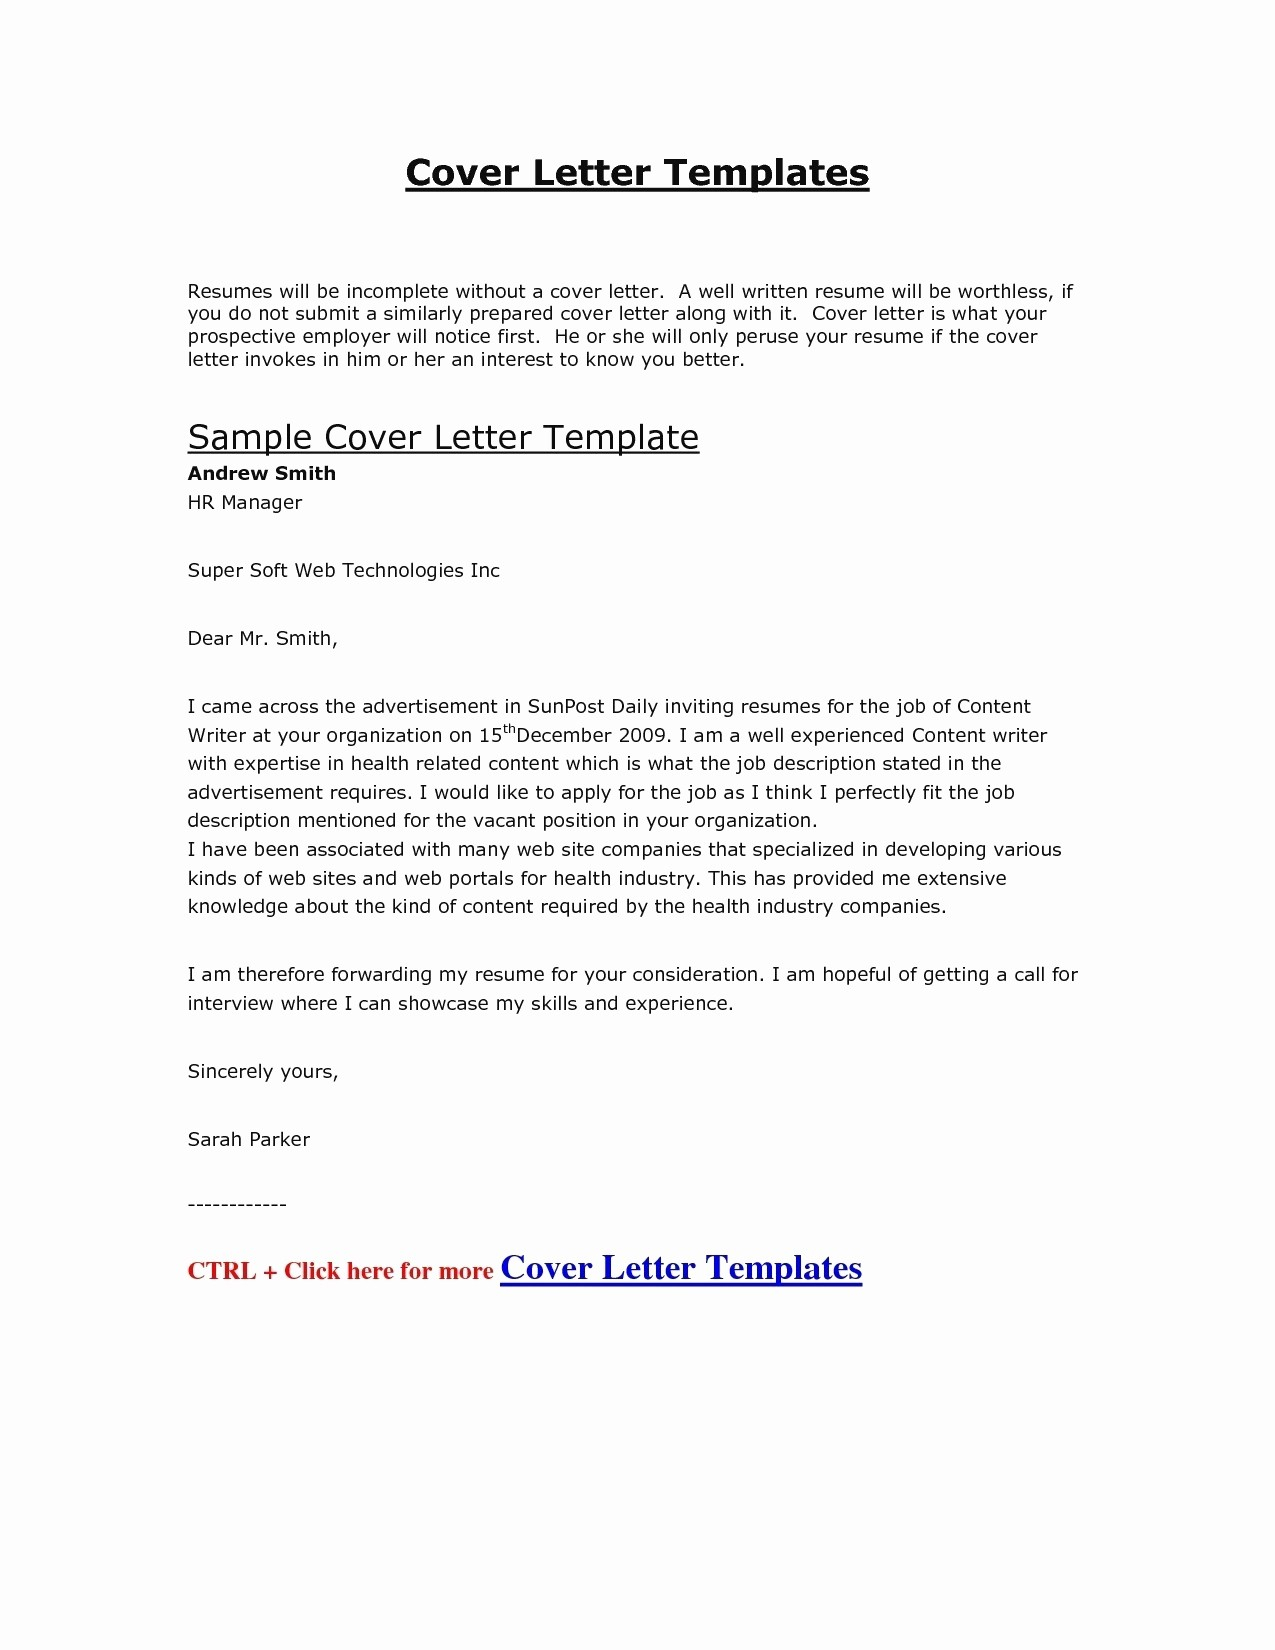 templates cover letter for job application